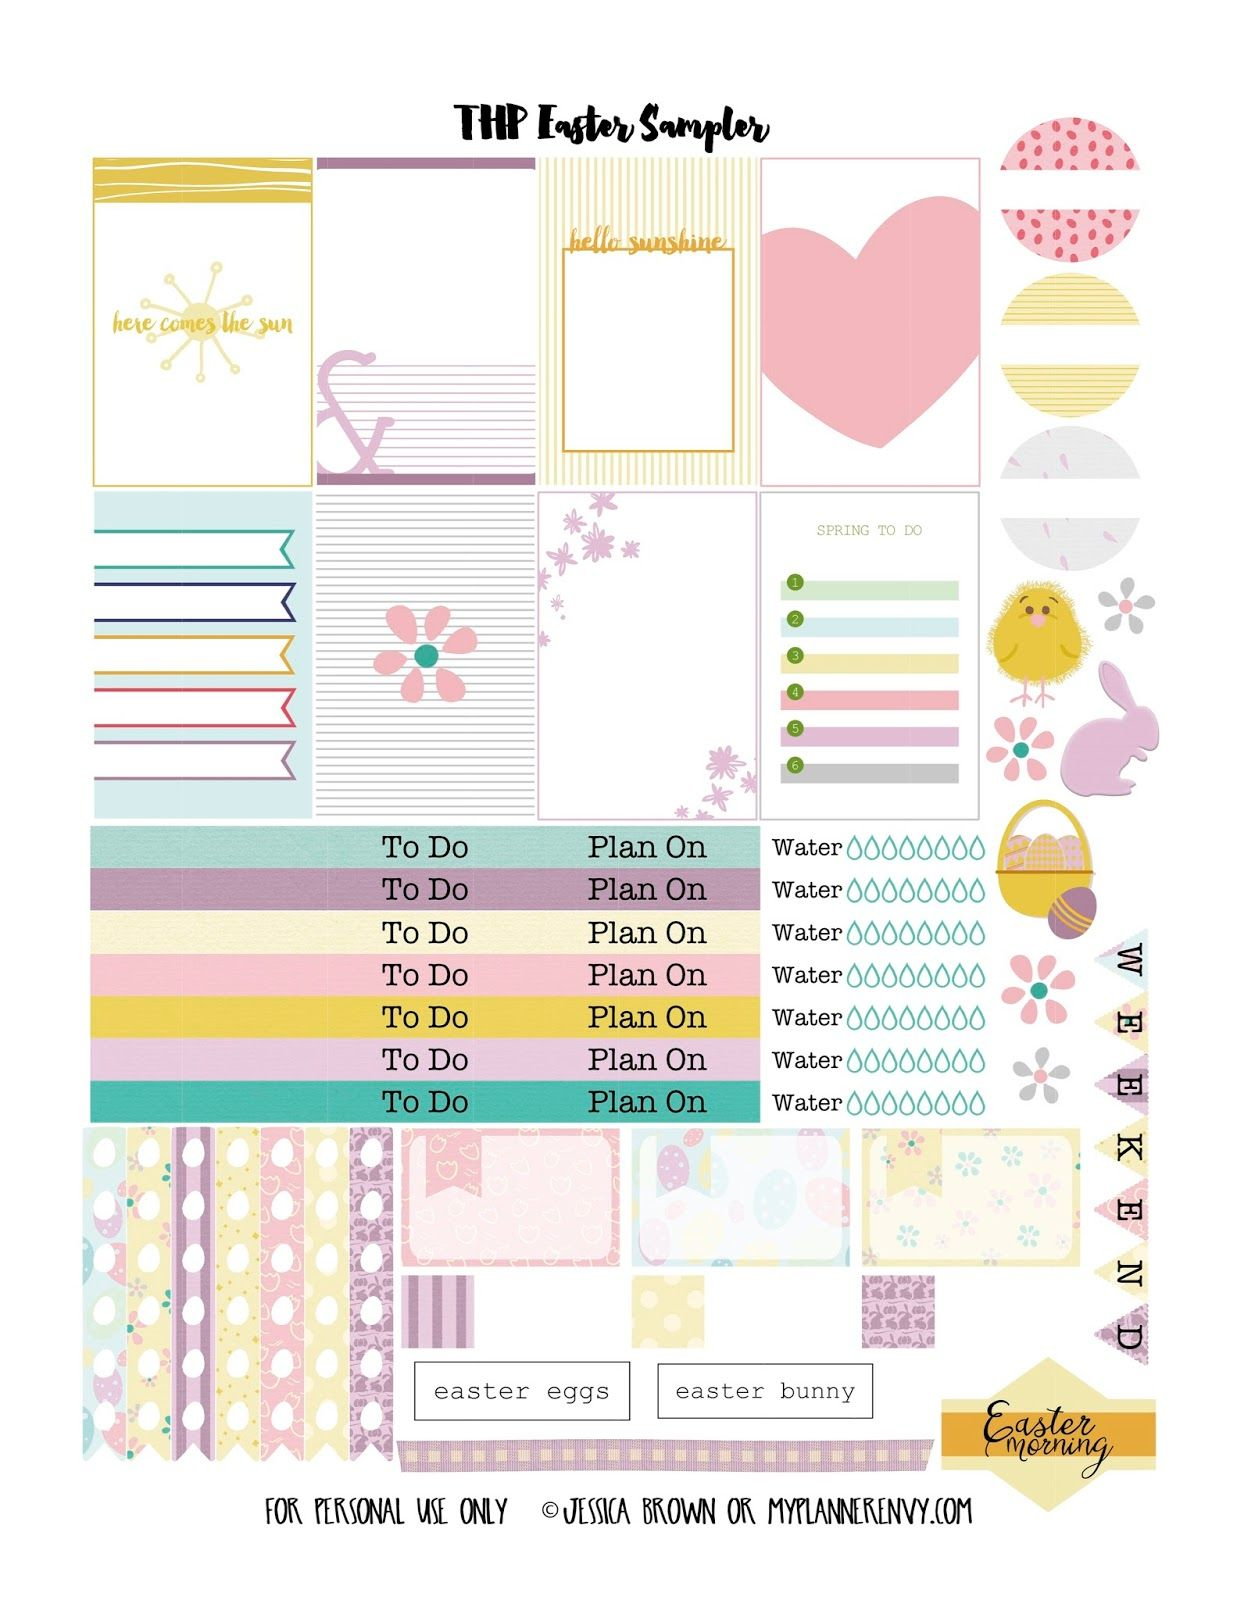 My Planner Envy: Easter Sampler - Free Planner Printable